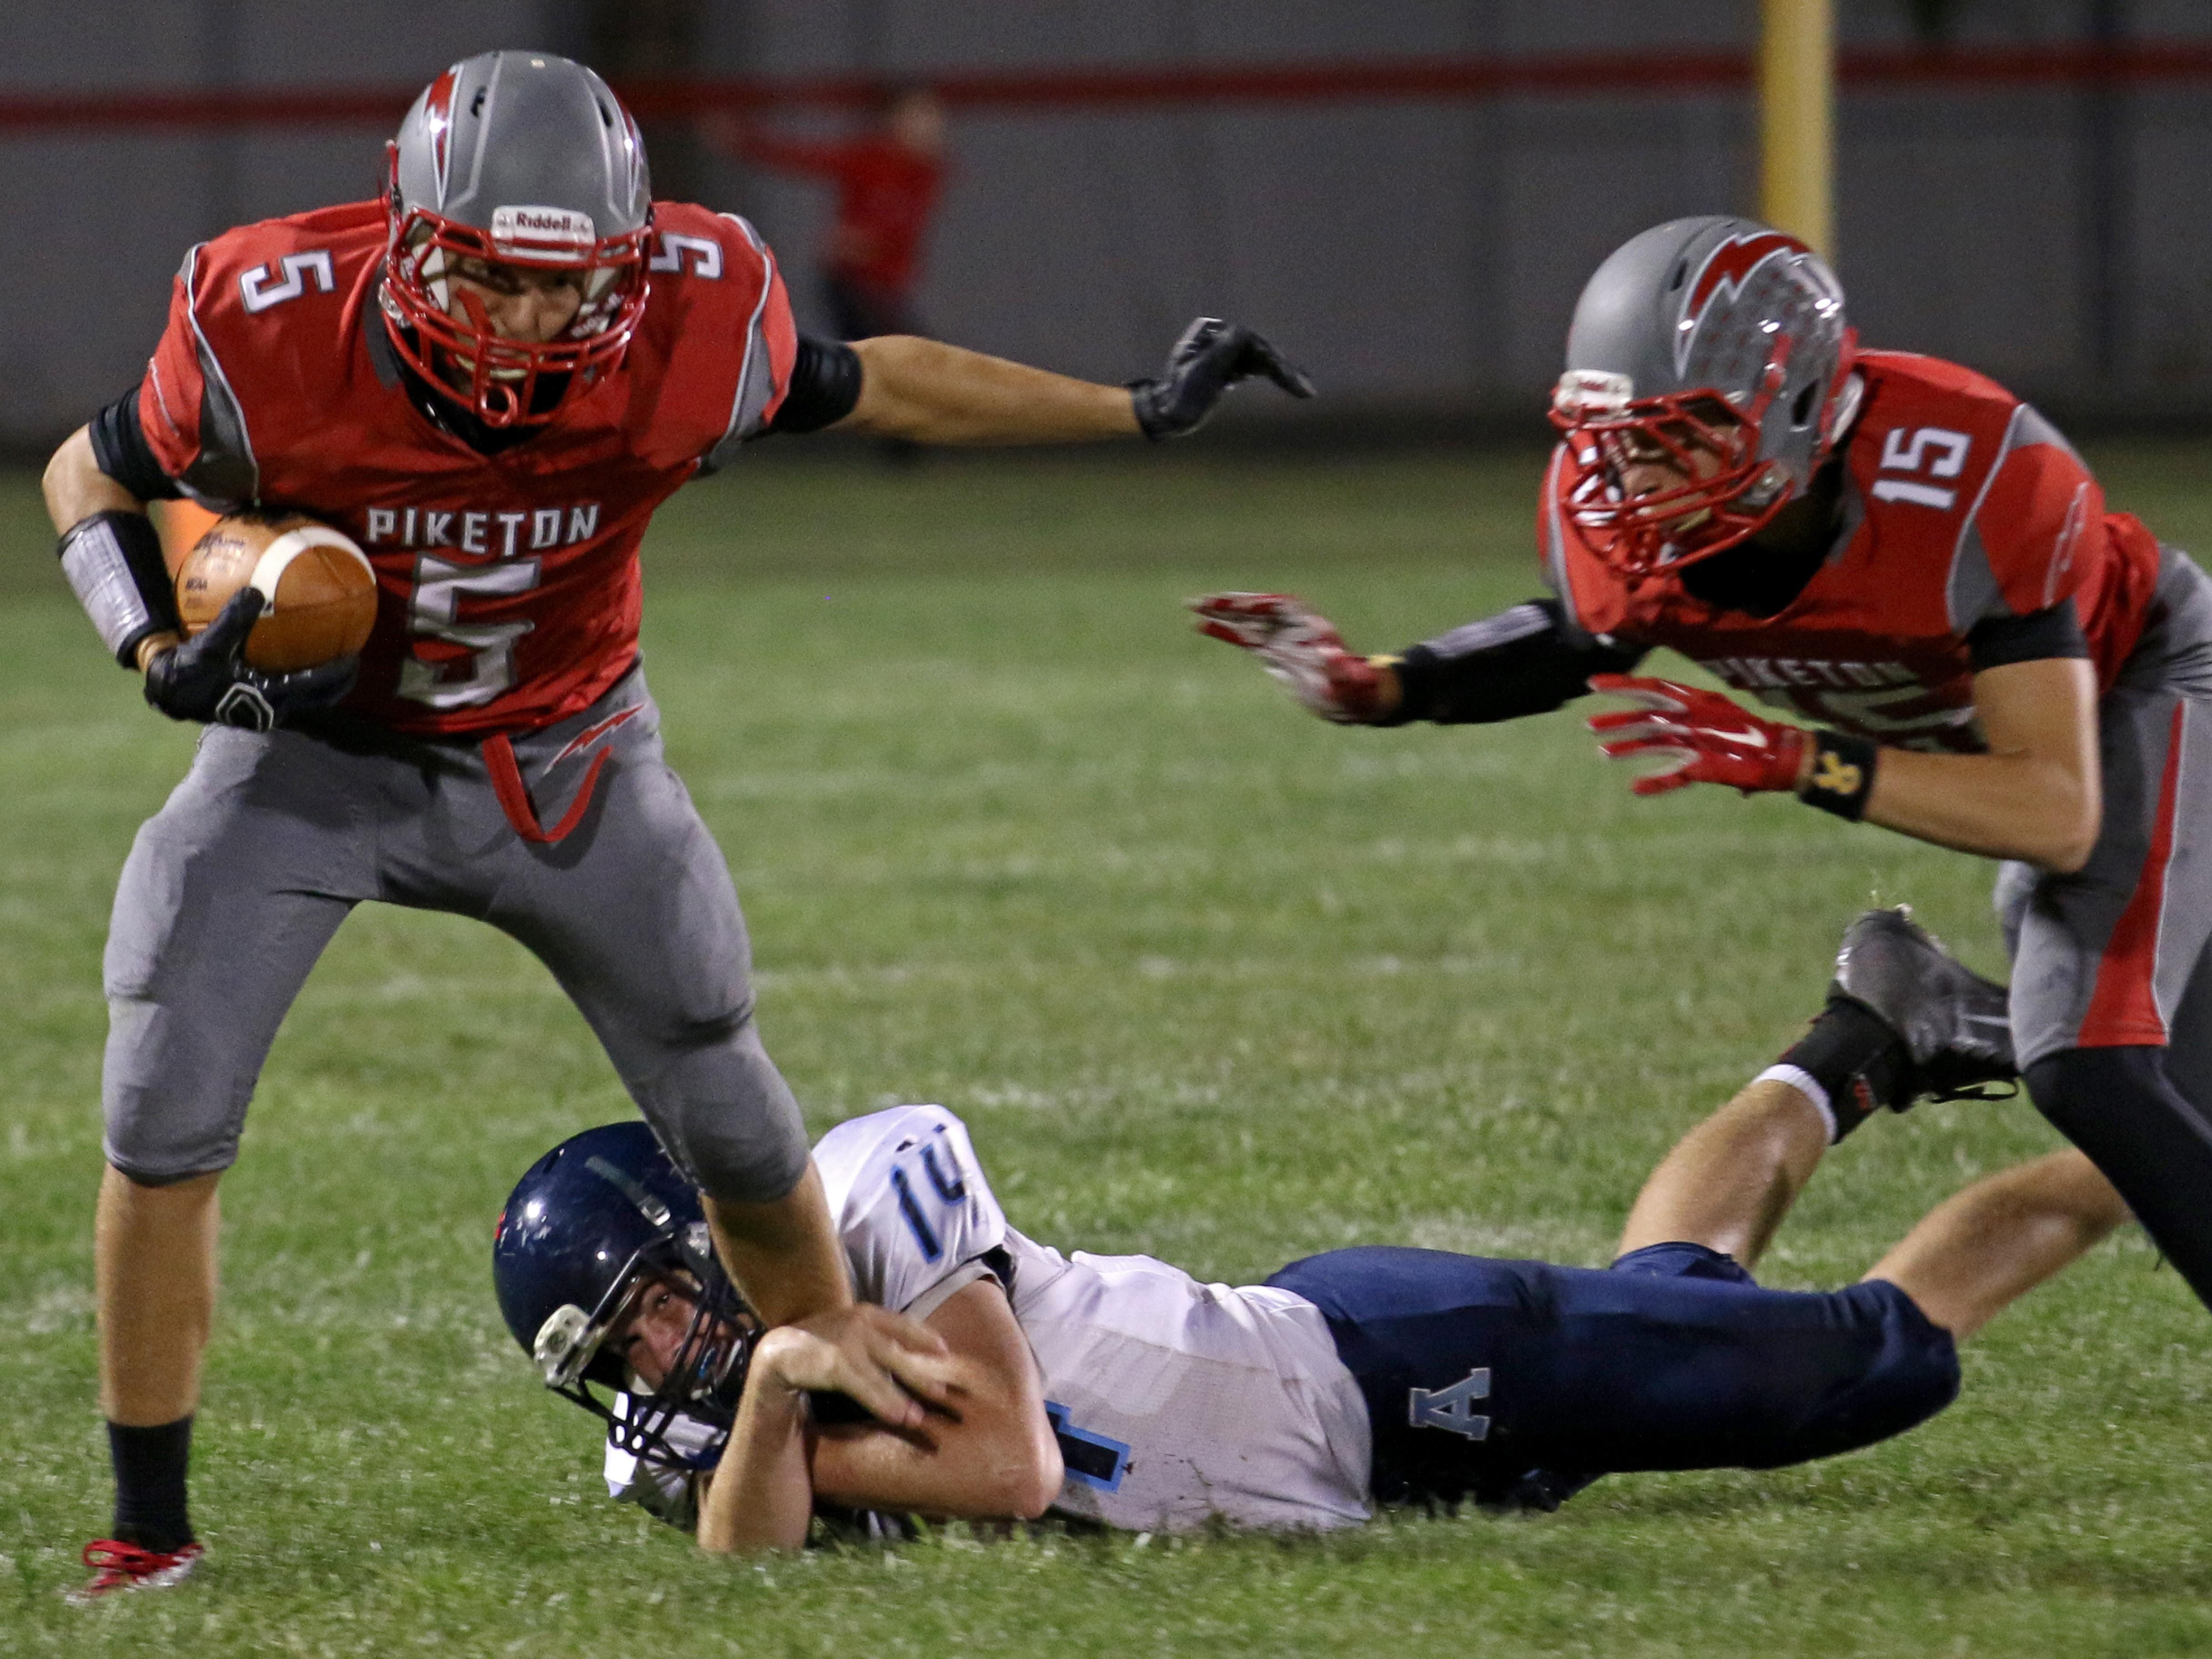 Piketon's Gabe Birkhimer tries to break Adena's Jake Dawson's attempt at a tackle during Friday's game at Piketon. The final score was Adena 47, Piketon 12.